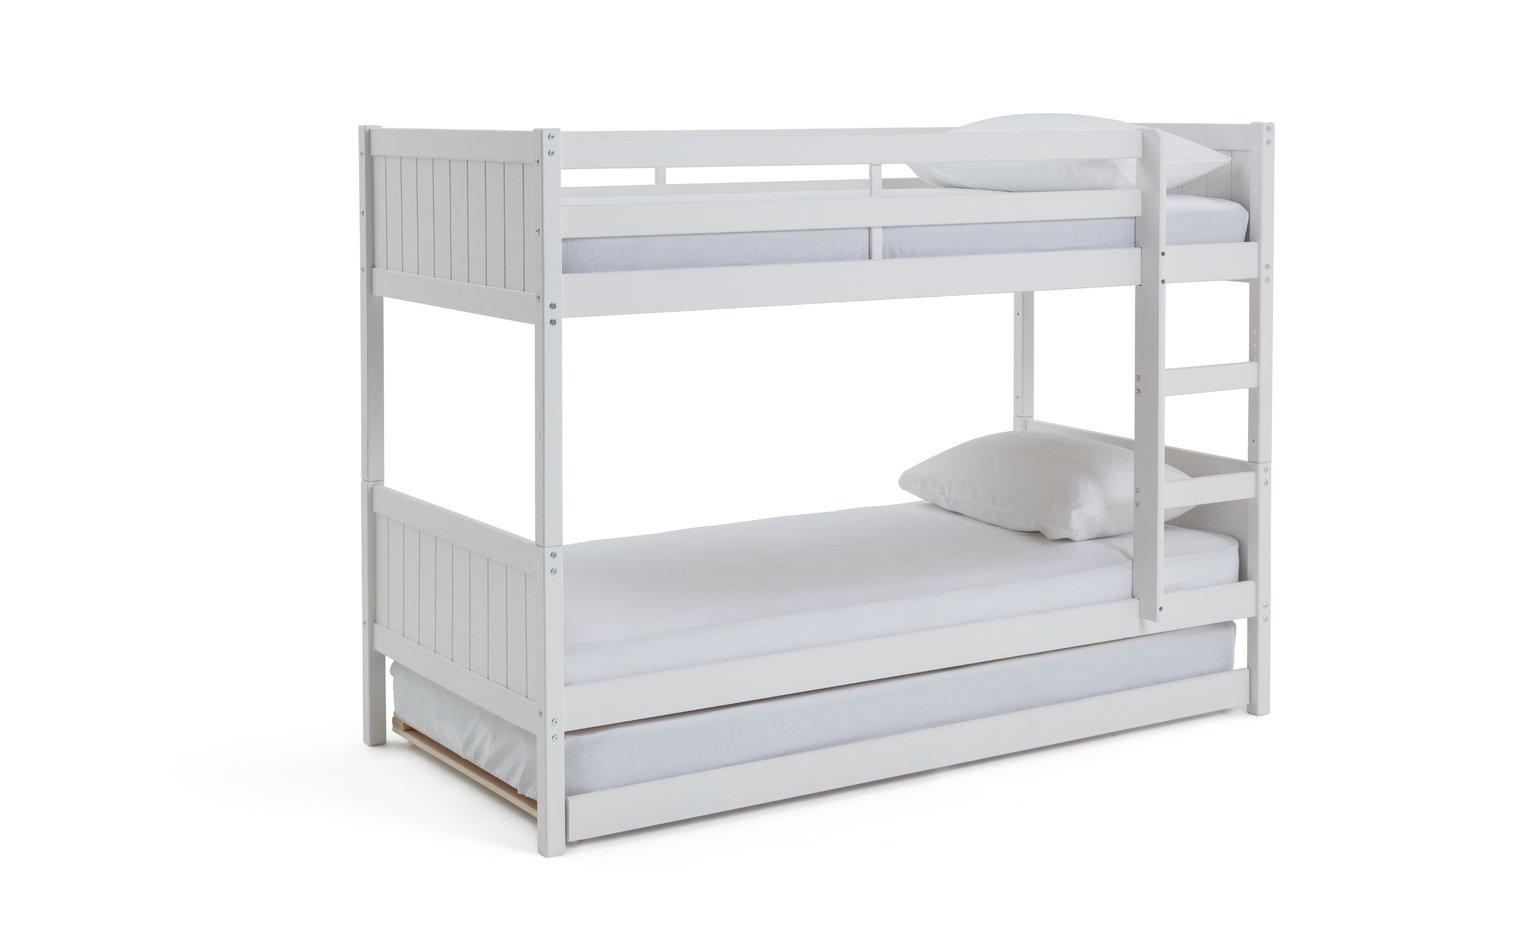 Buy Argos Home Detachable Sgl Bunk Bed Frame W Trundle White